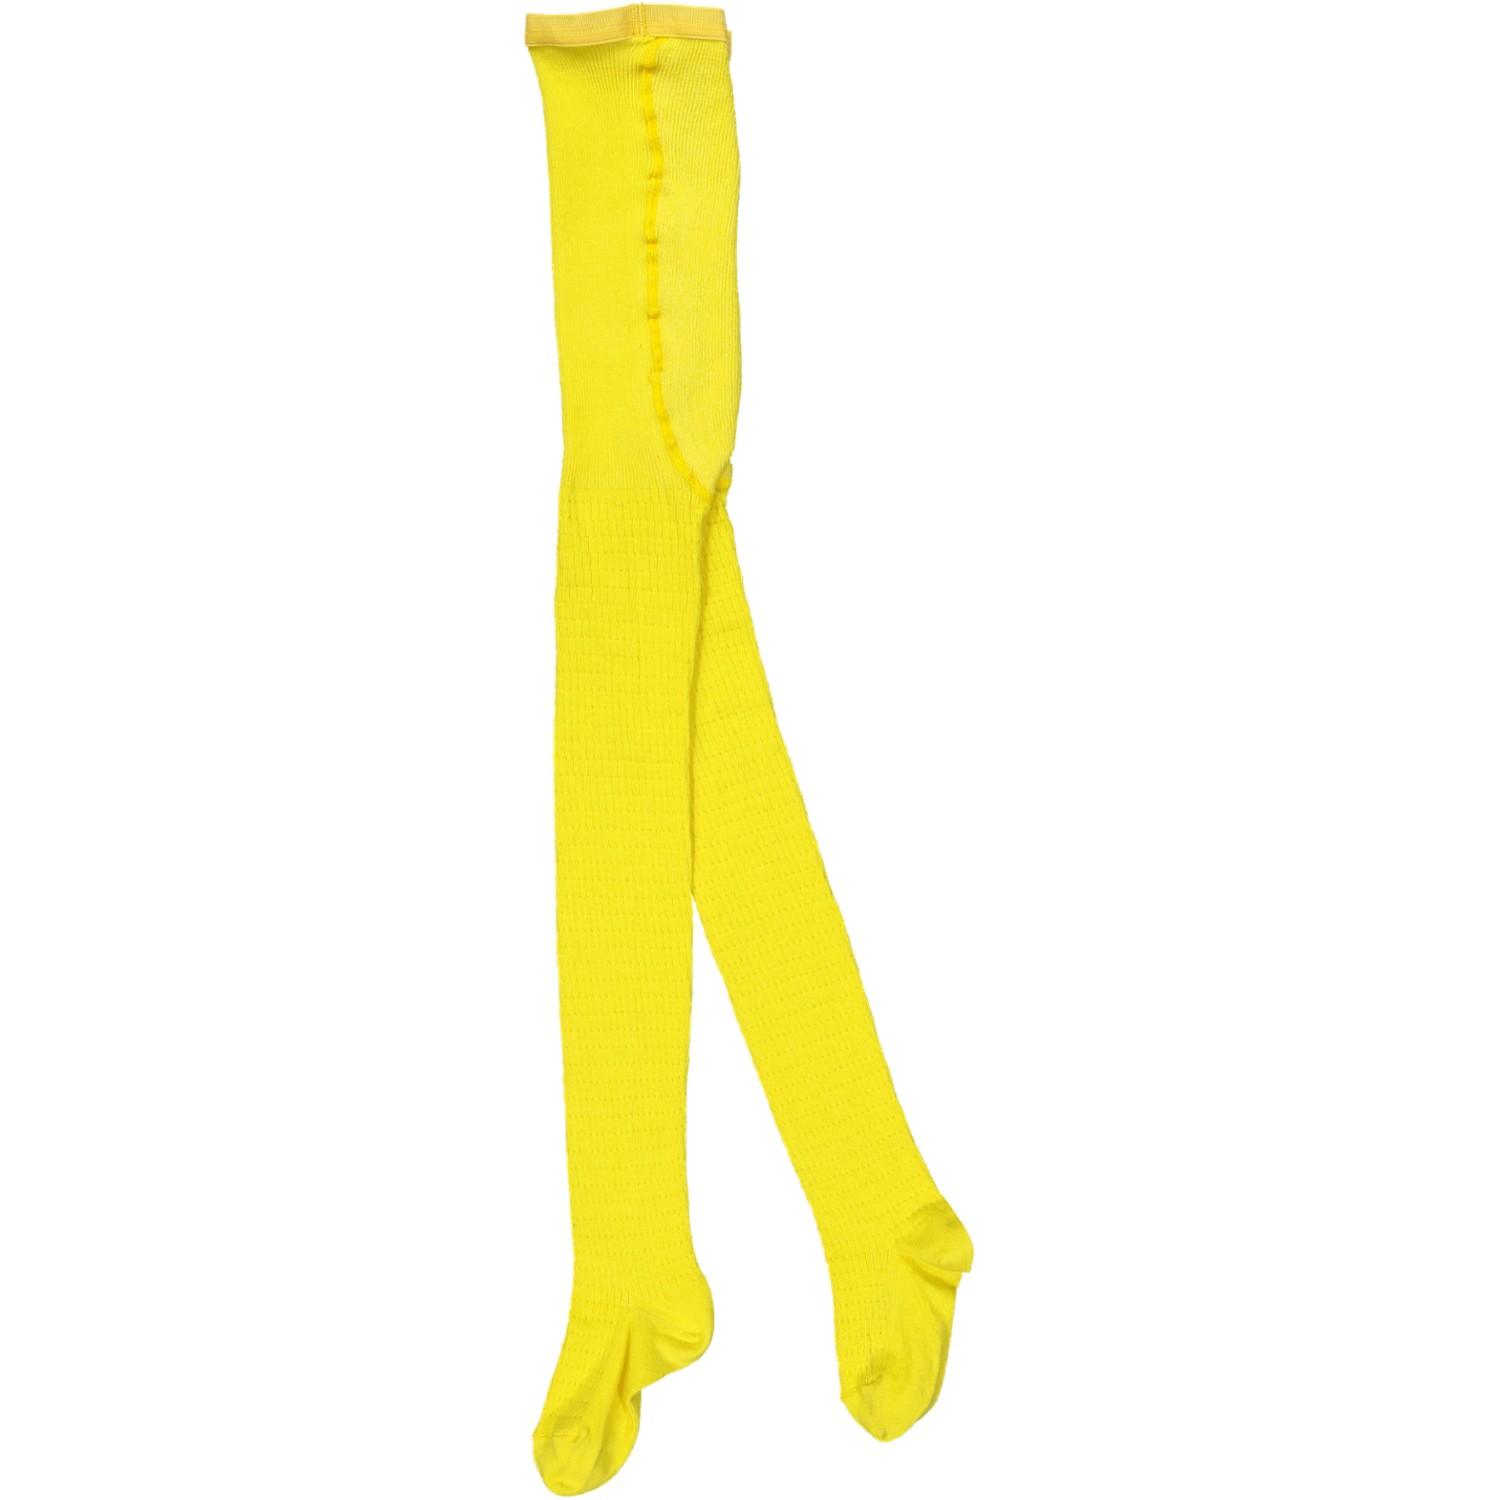 Tights blazing yellow